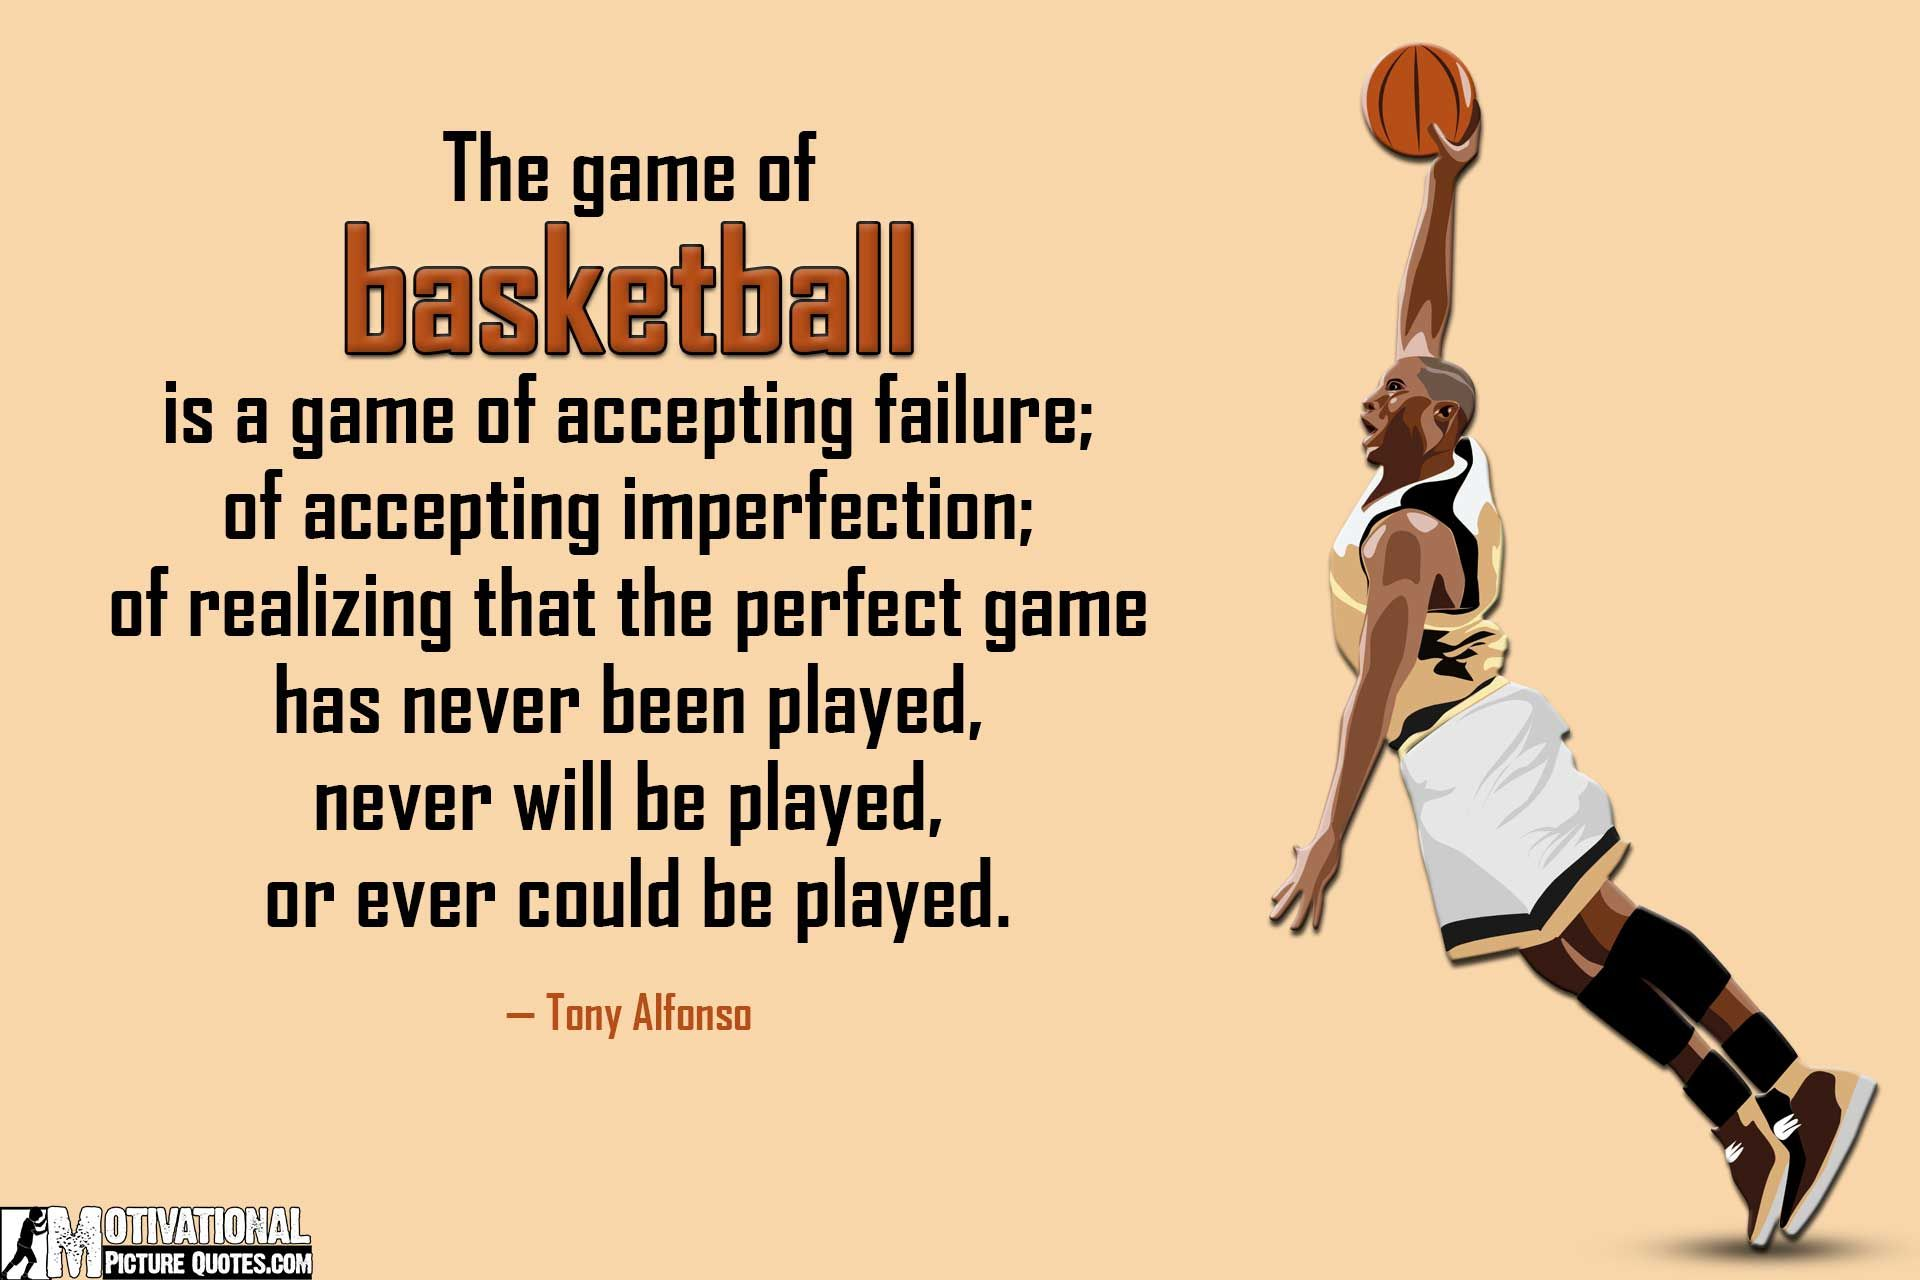 Inspirational basketball quotes pictures by tony alfonso